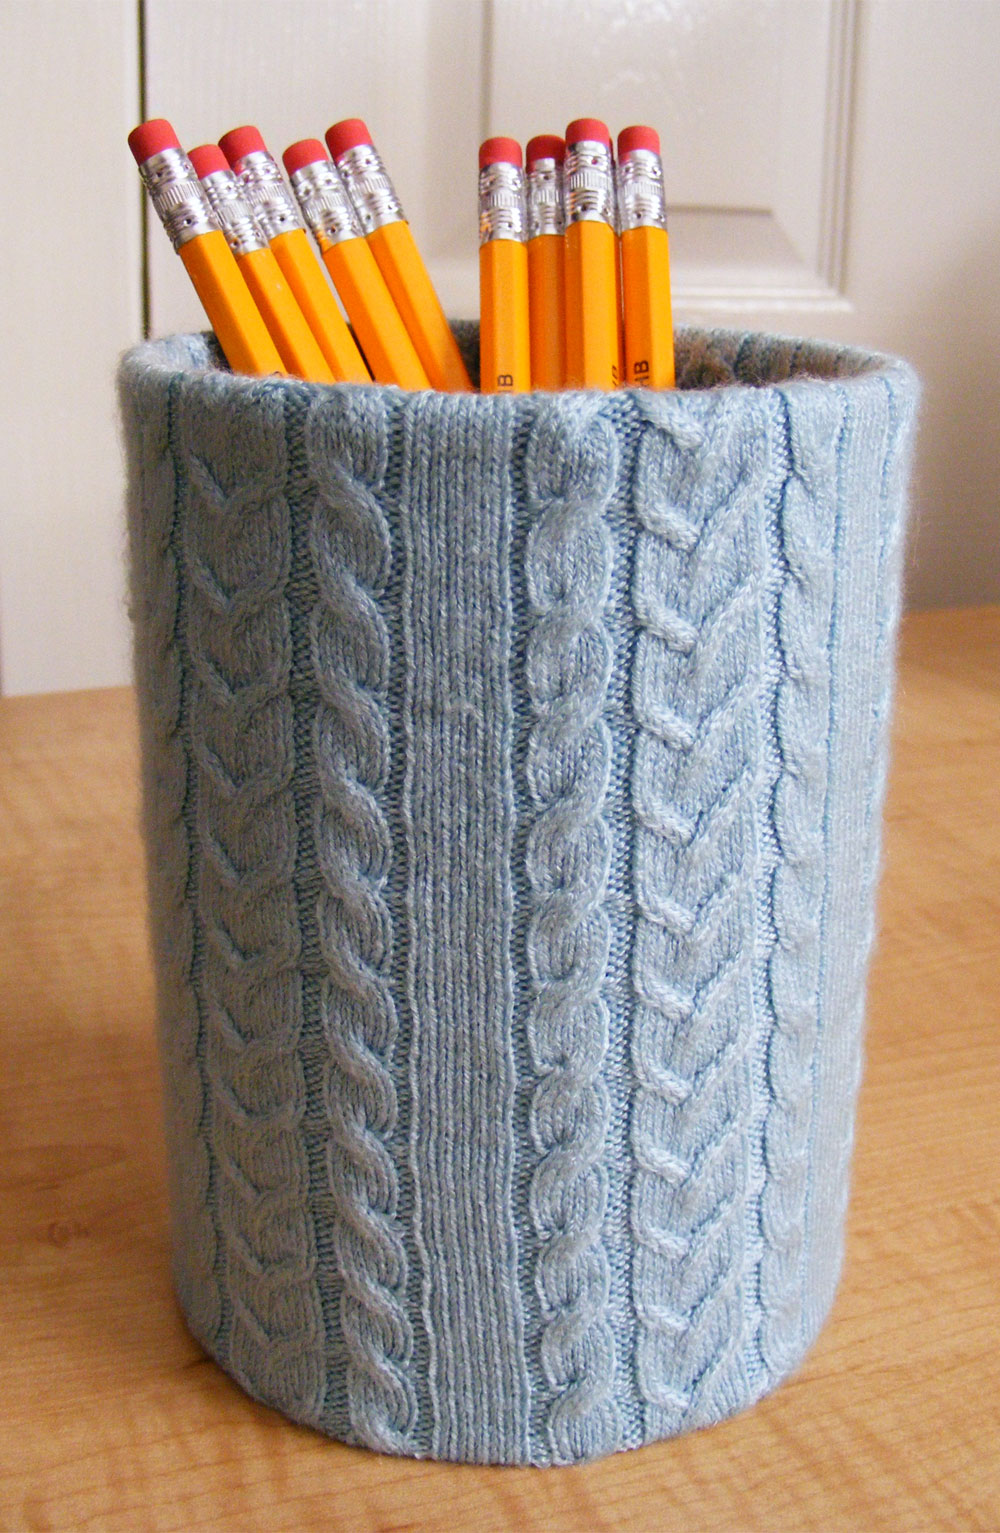 Knitted Pencil Holder Desk Accessory